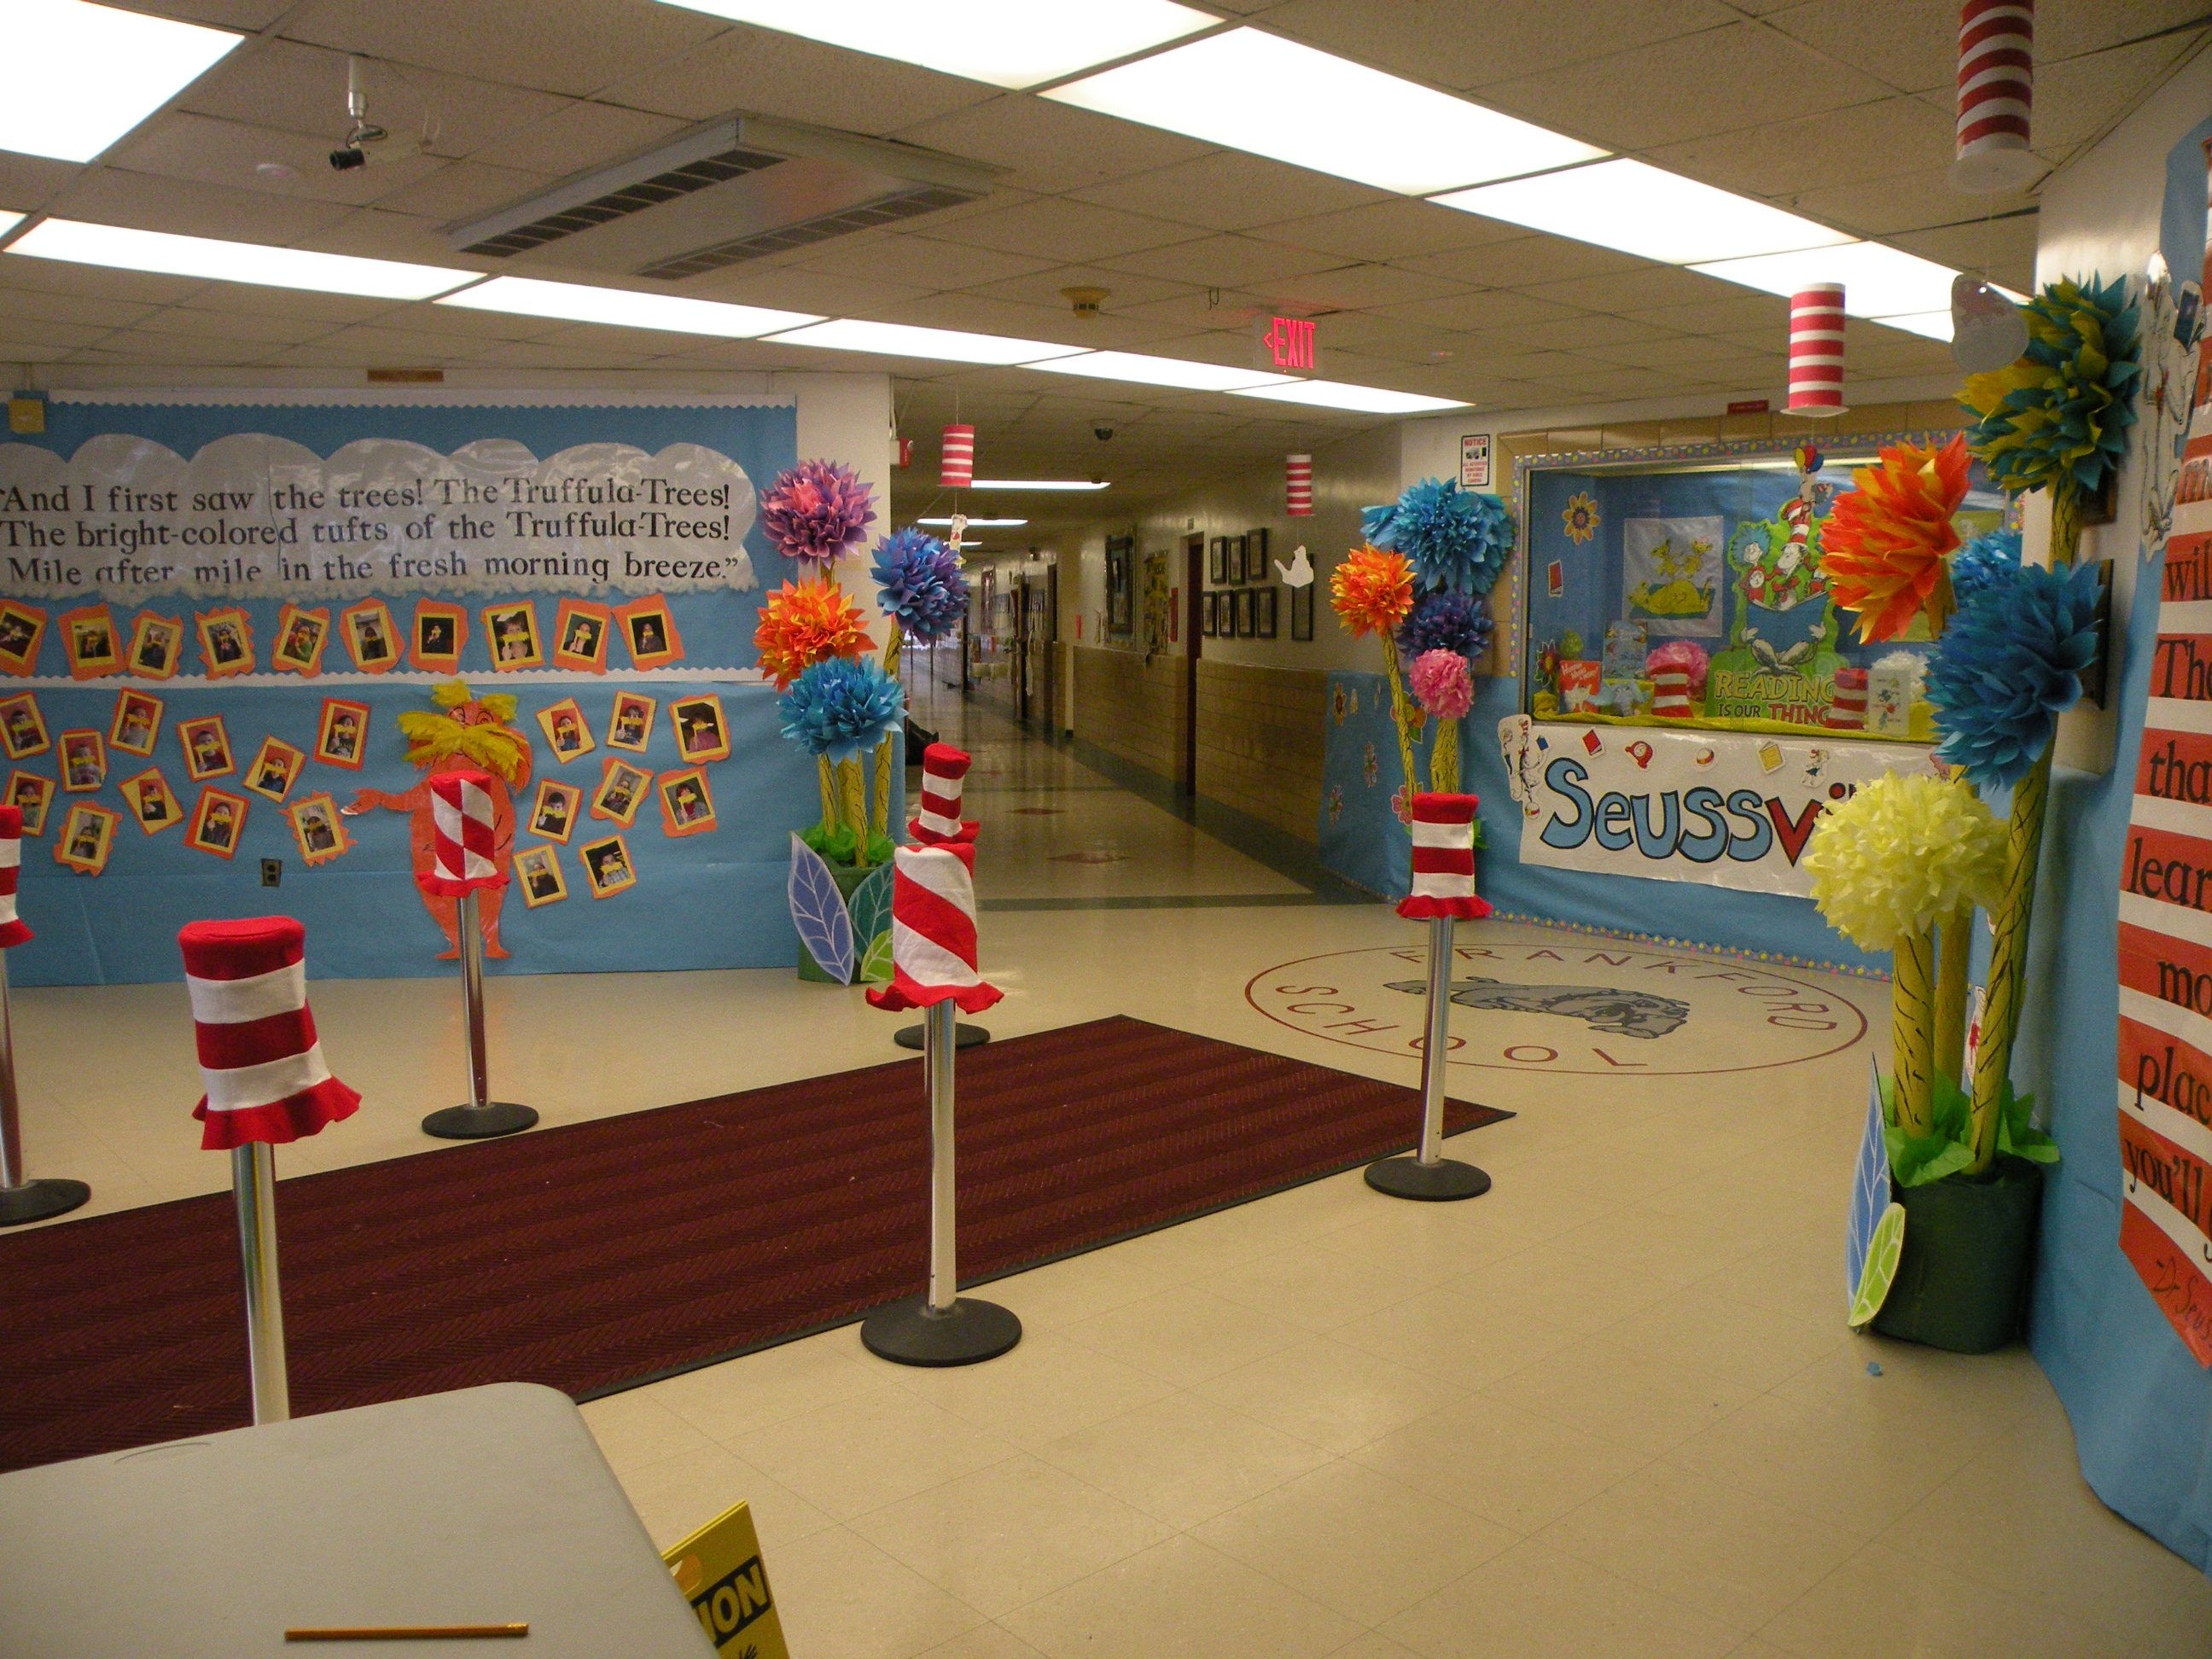 Lobby Decoration Ideas Seussville Decorations In School Lobby Dr Seuss And